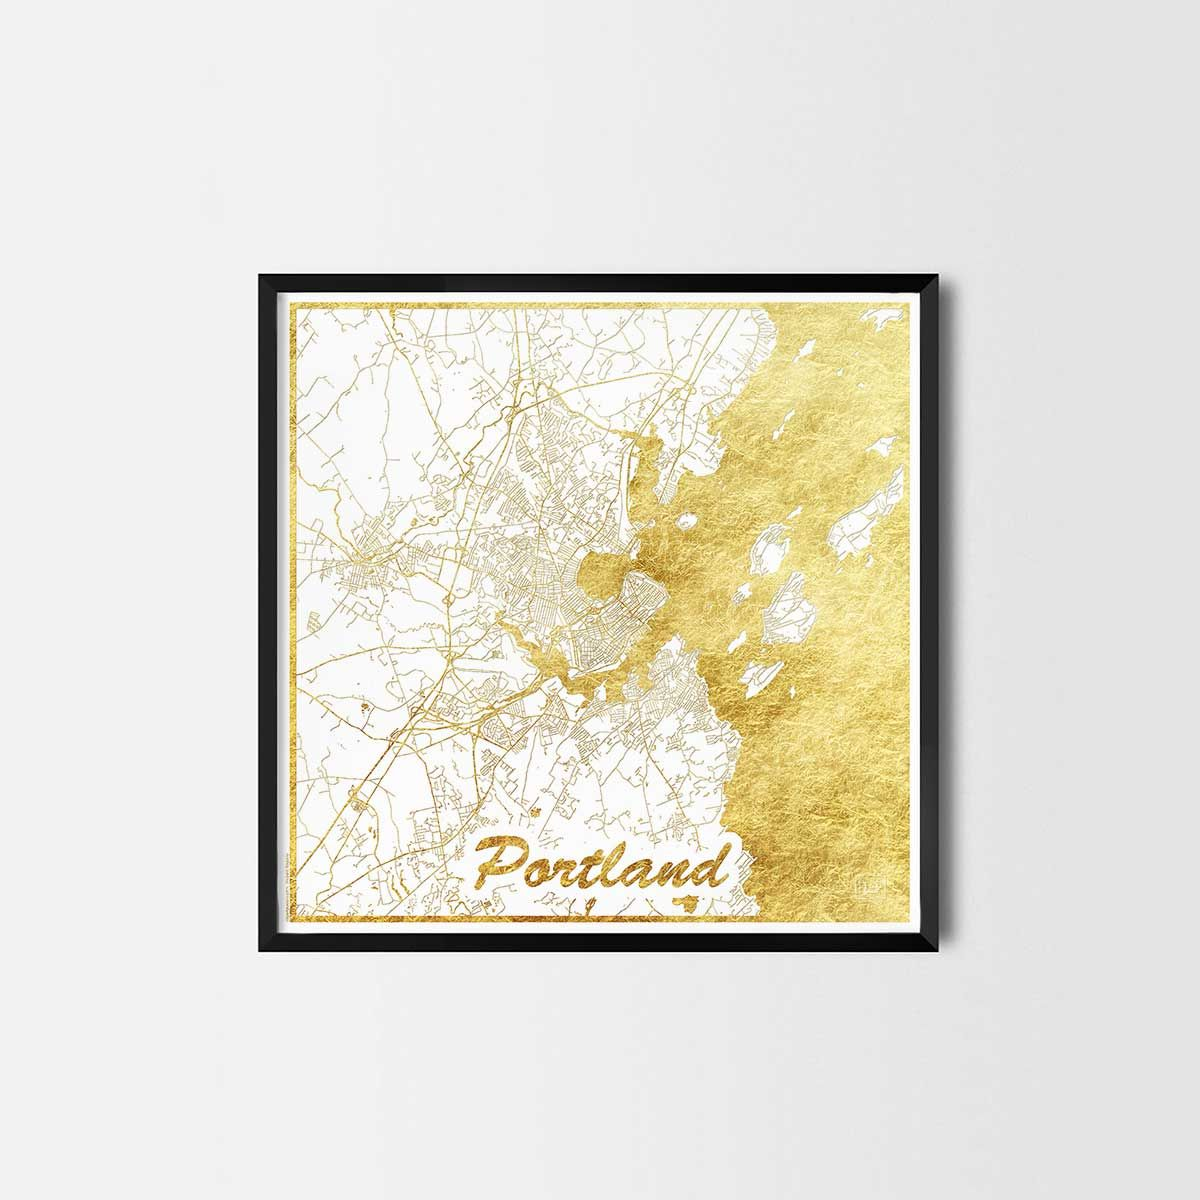 Portland map posters - City Art Posters and Prints | Portland map ...